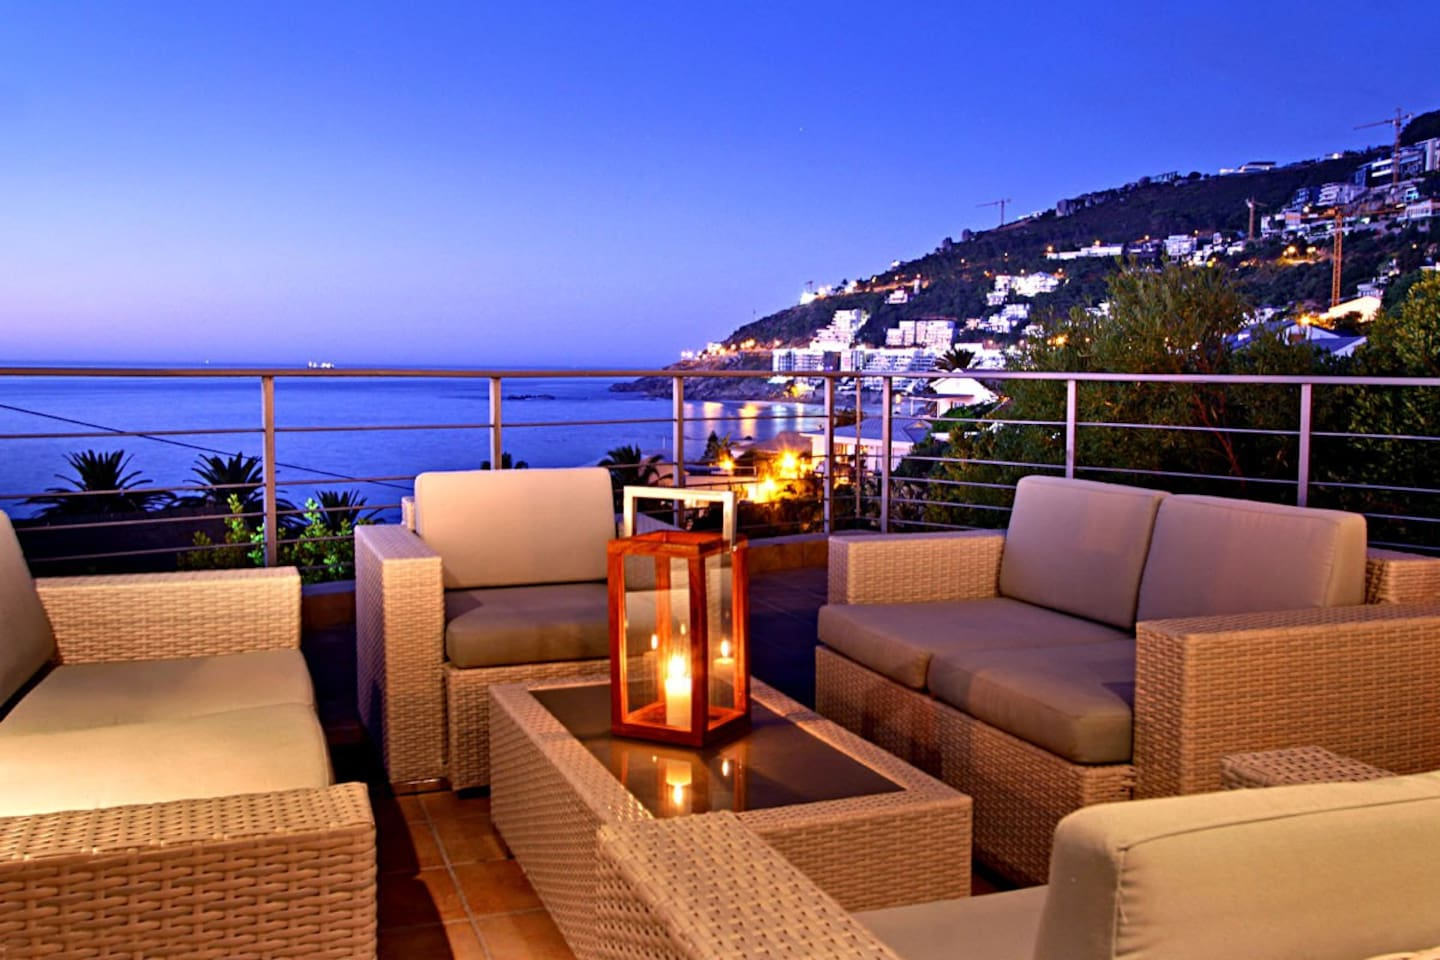 Outdoor entertaining with stunning views